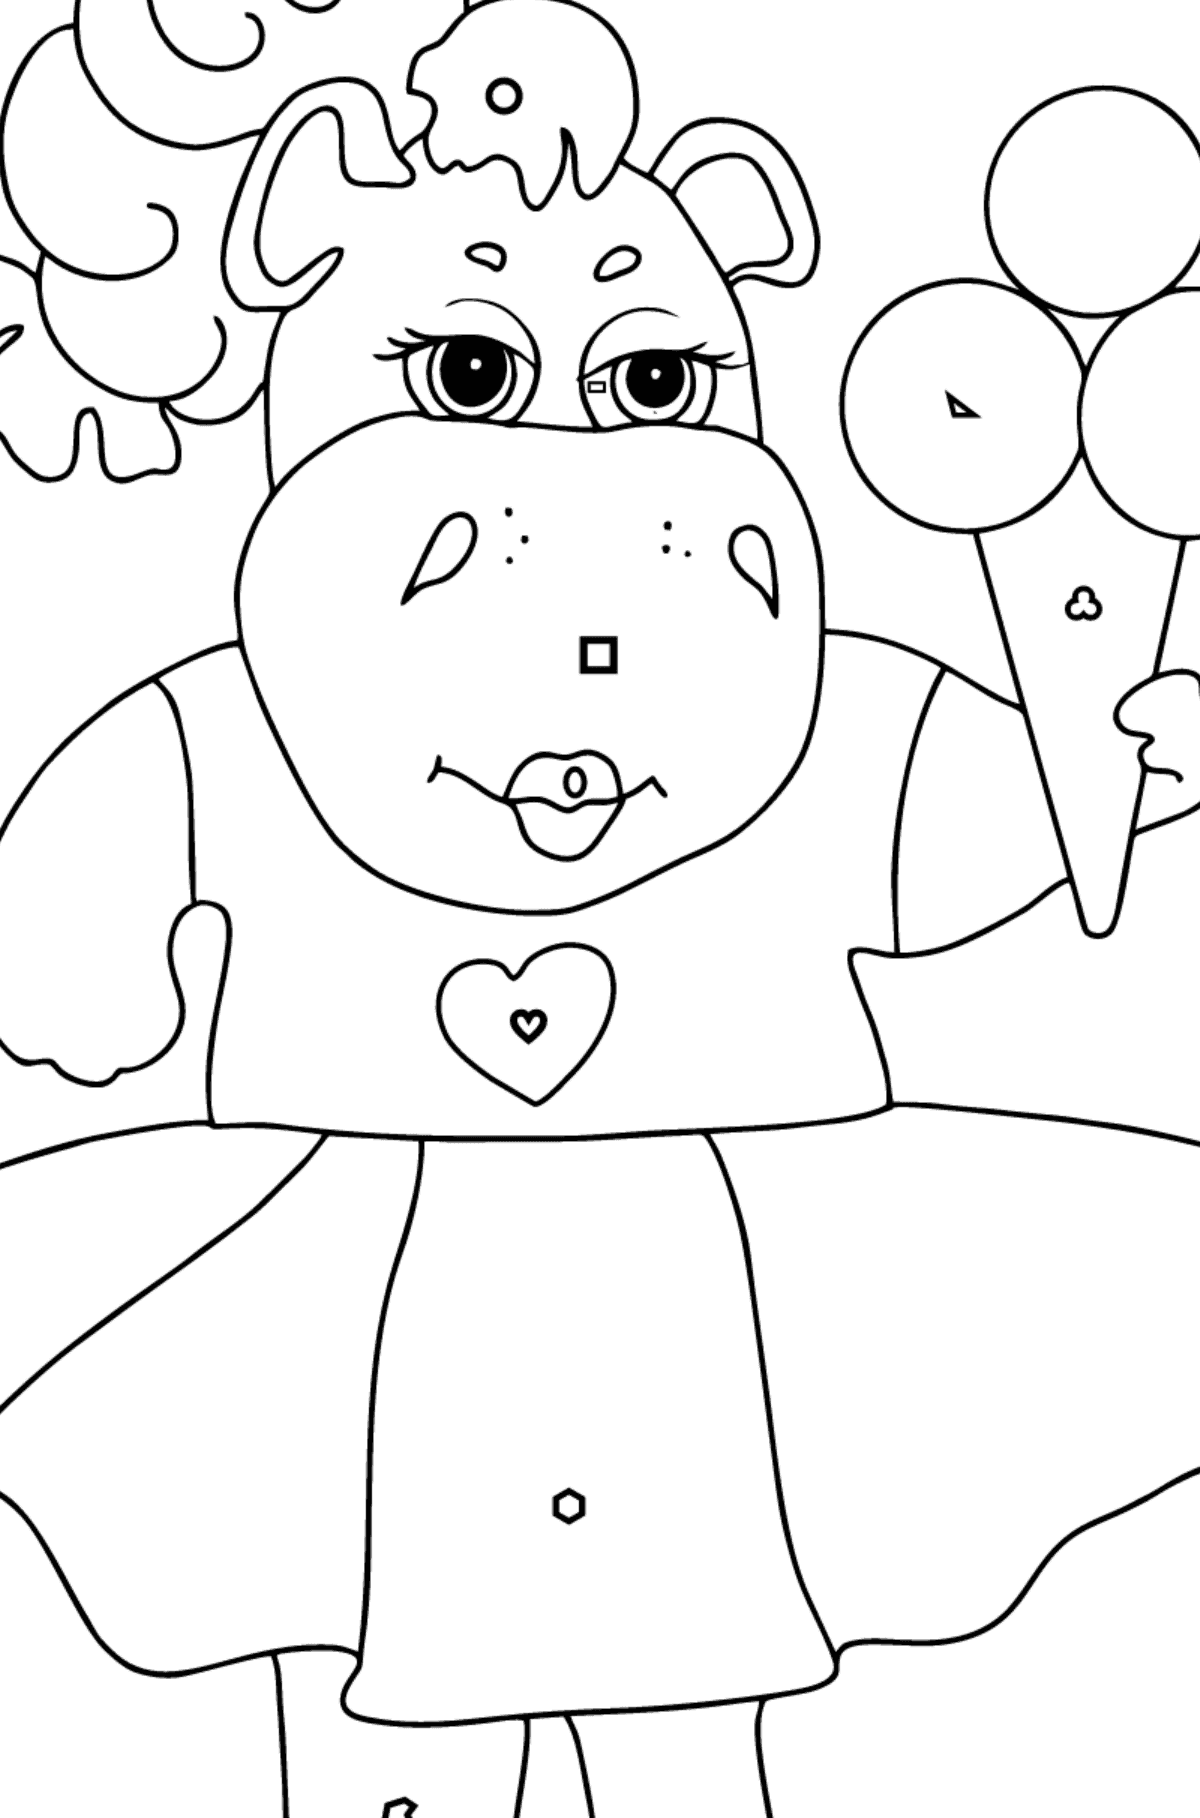 A Hippo in a Fancy Dress is Eating Ice Cream for Kids By Geometric Shapes